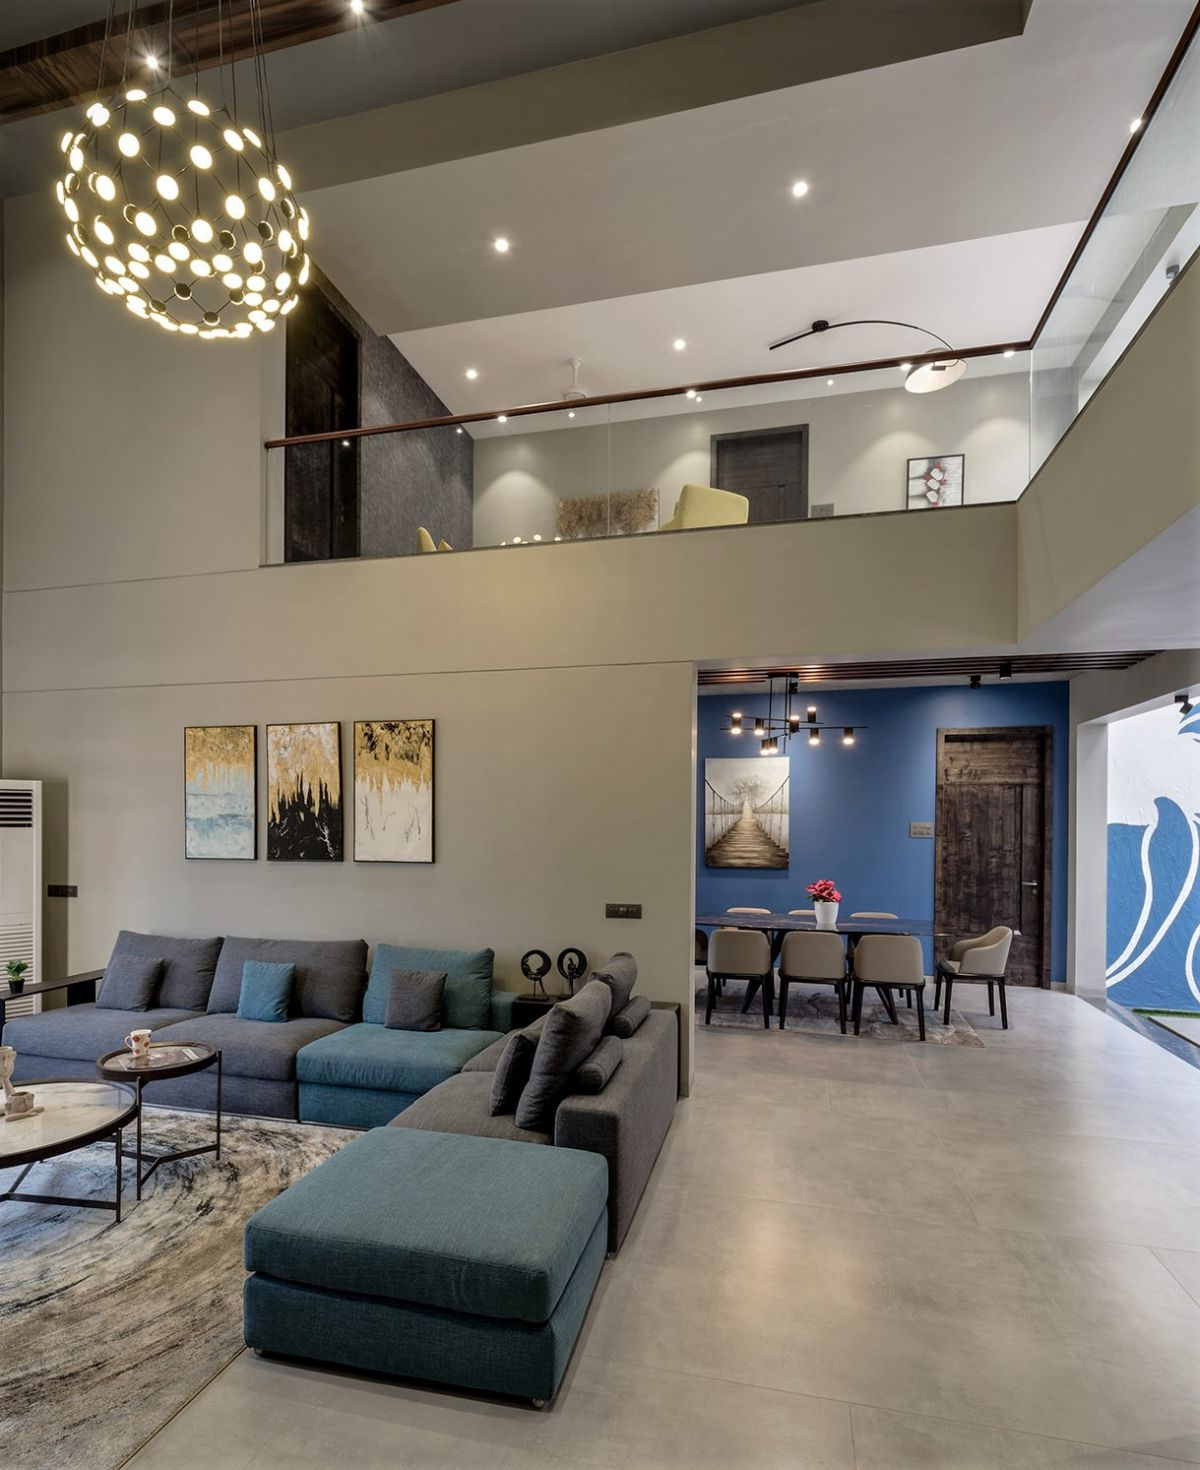 GHEI RESIDENCE at NANDED, MAHARASHTRA, by 4TH AXIS DESIGN STUDIO 14